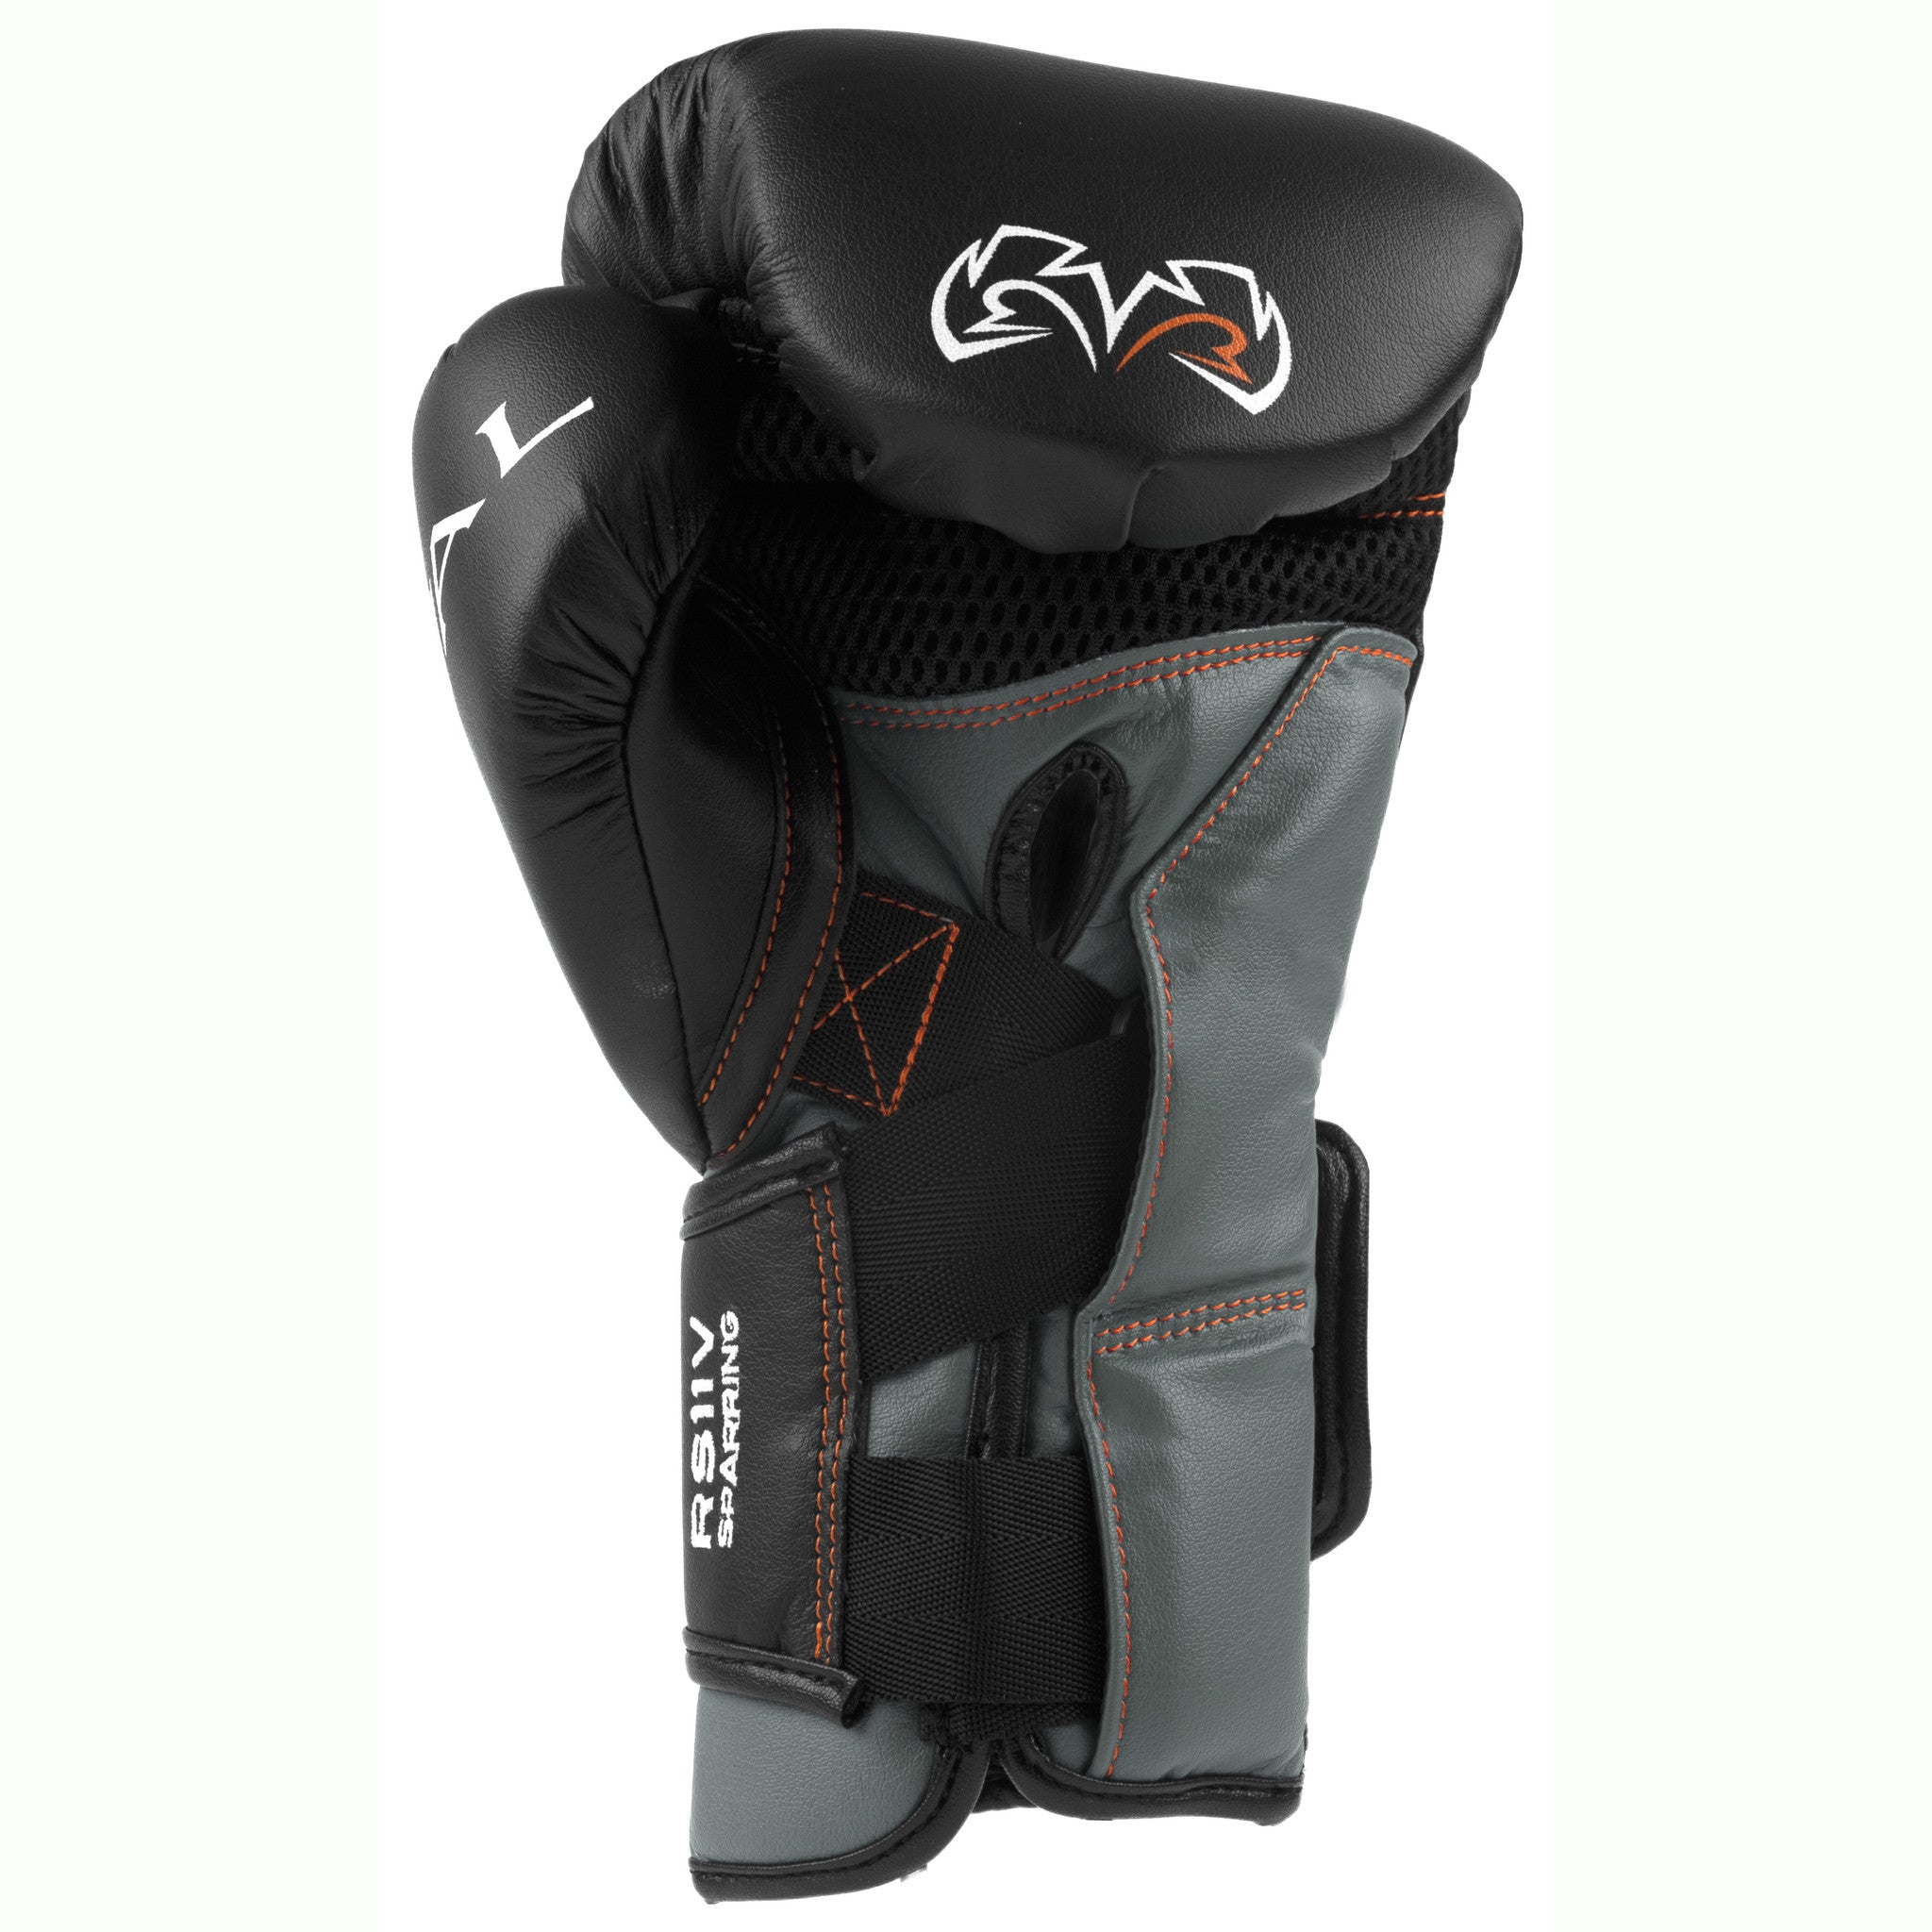 Evo Fitness Boxing Gloves Review: Rival RS11V-Evolution Sparring Gloves - Velcro